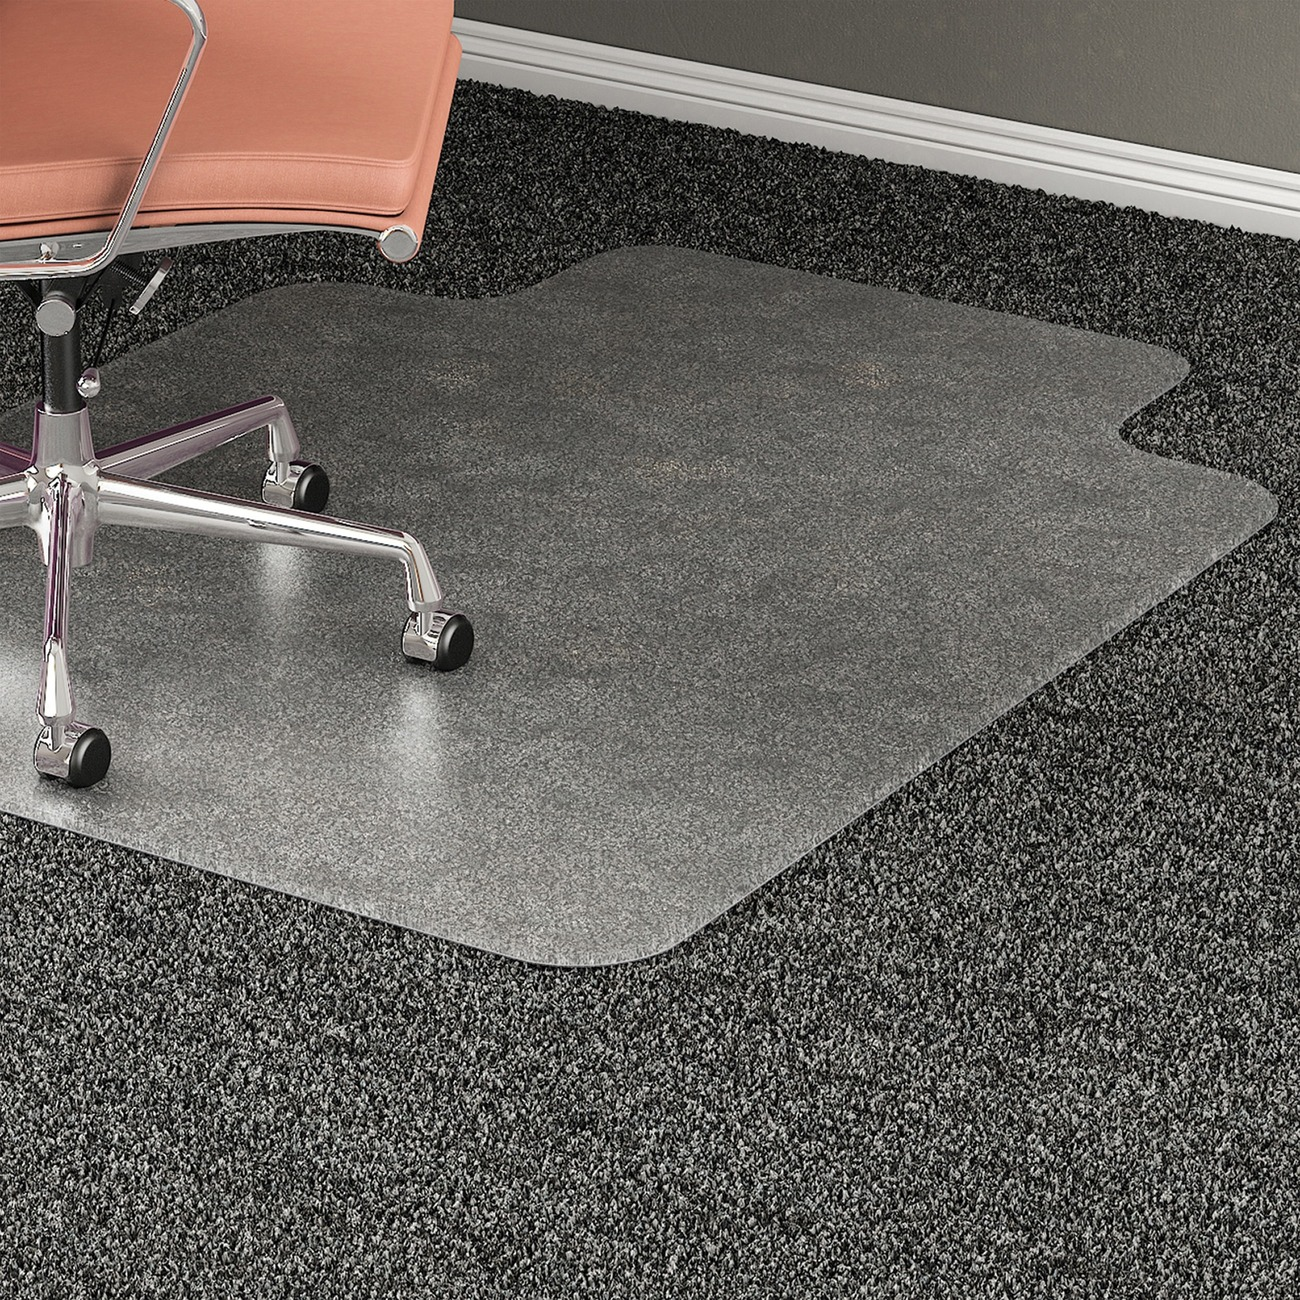 Chair Mat For Thick Carpet Kamloops Office Systems Furniture Chairs Chair Mats